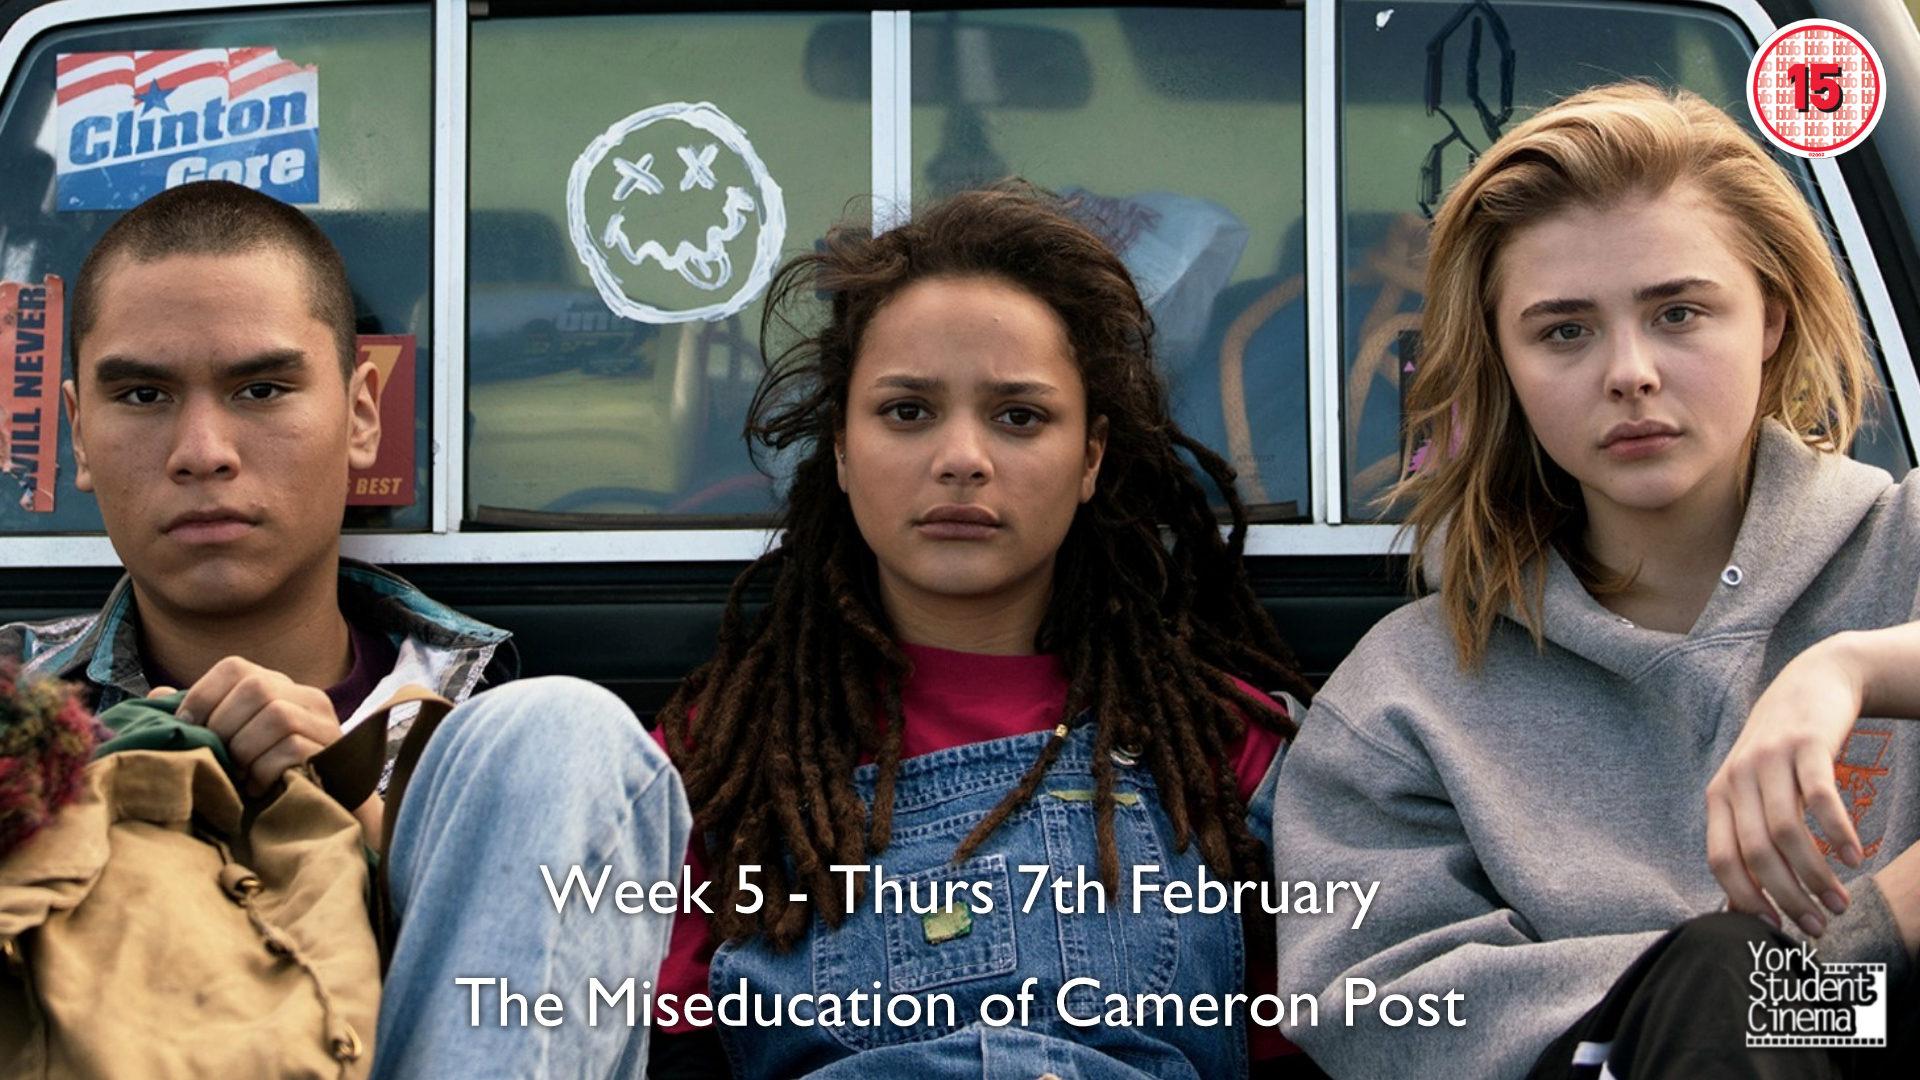 YSC Screening of The Miseducation of Cameron Post